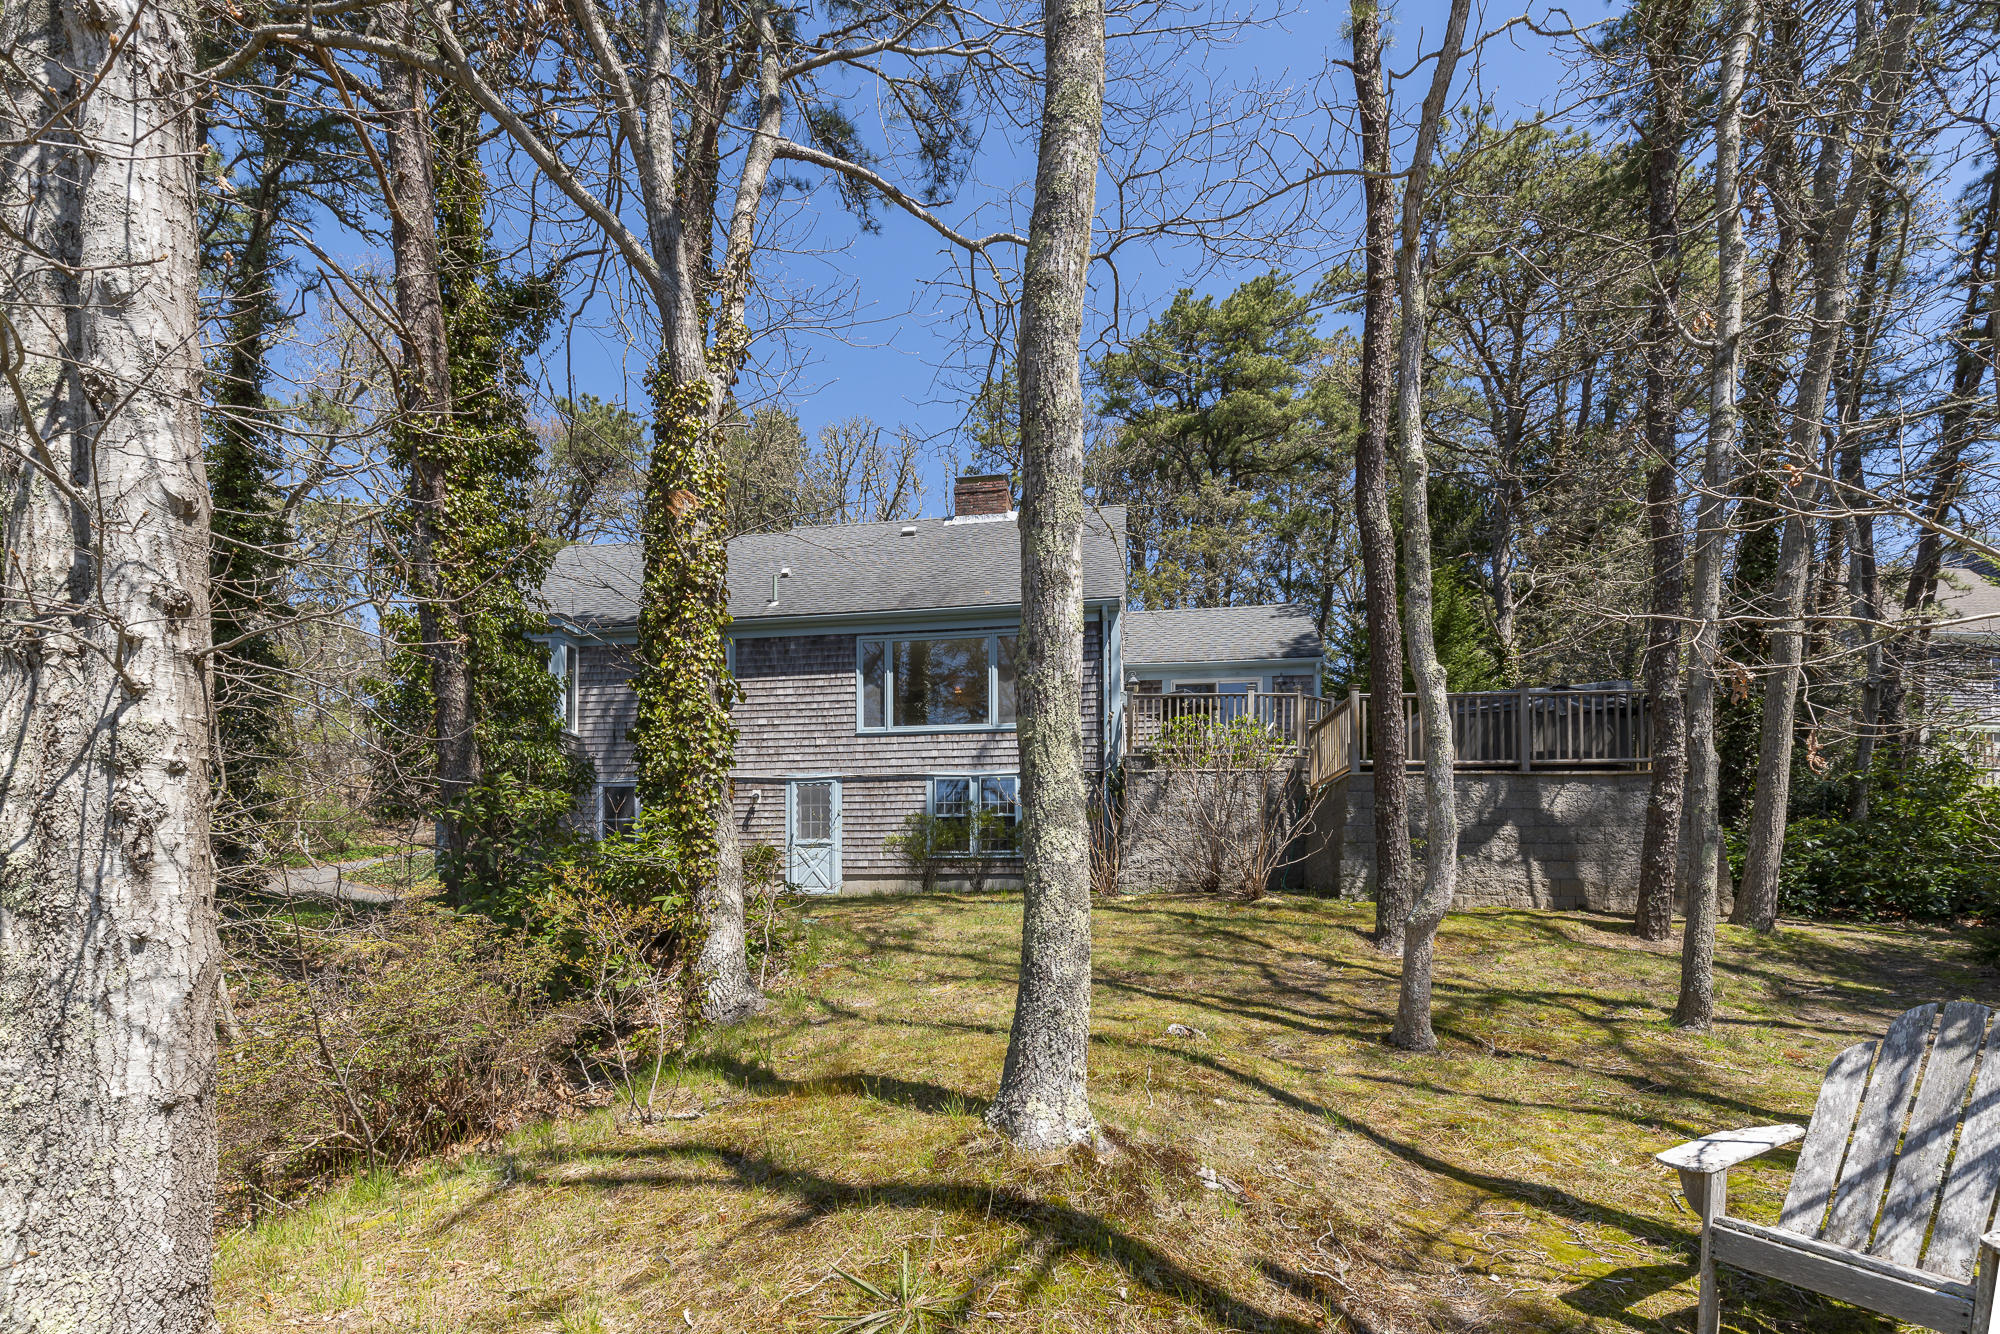 39 Country Side Drive, Chatham MA, 02633 - slide 3